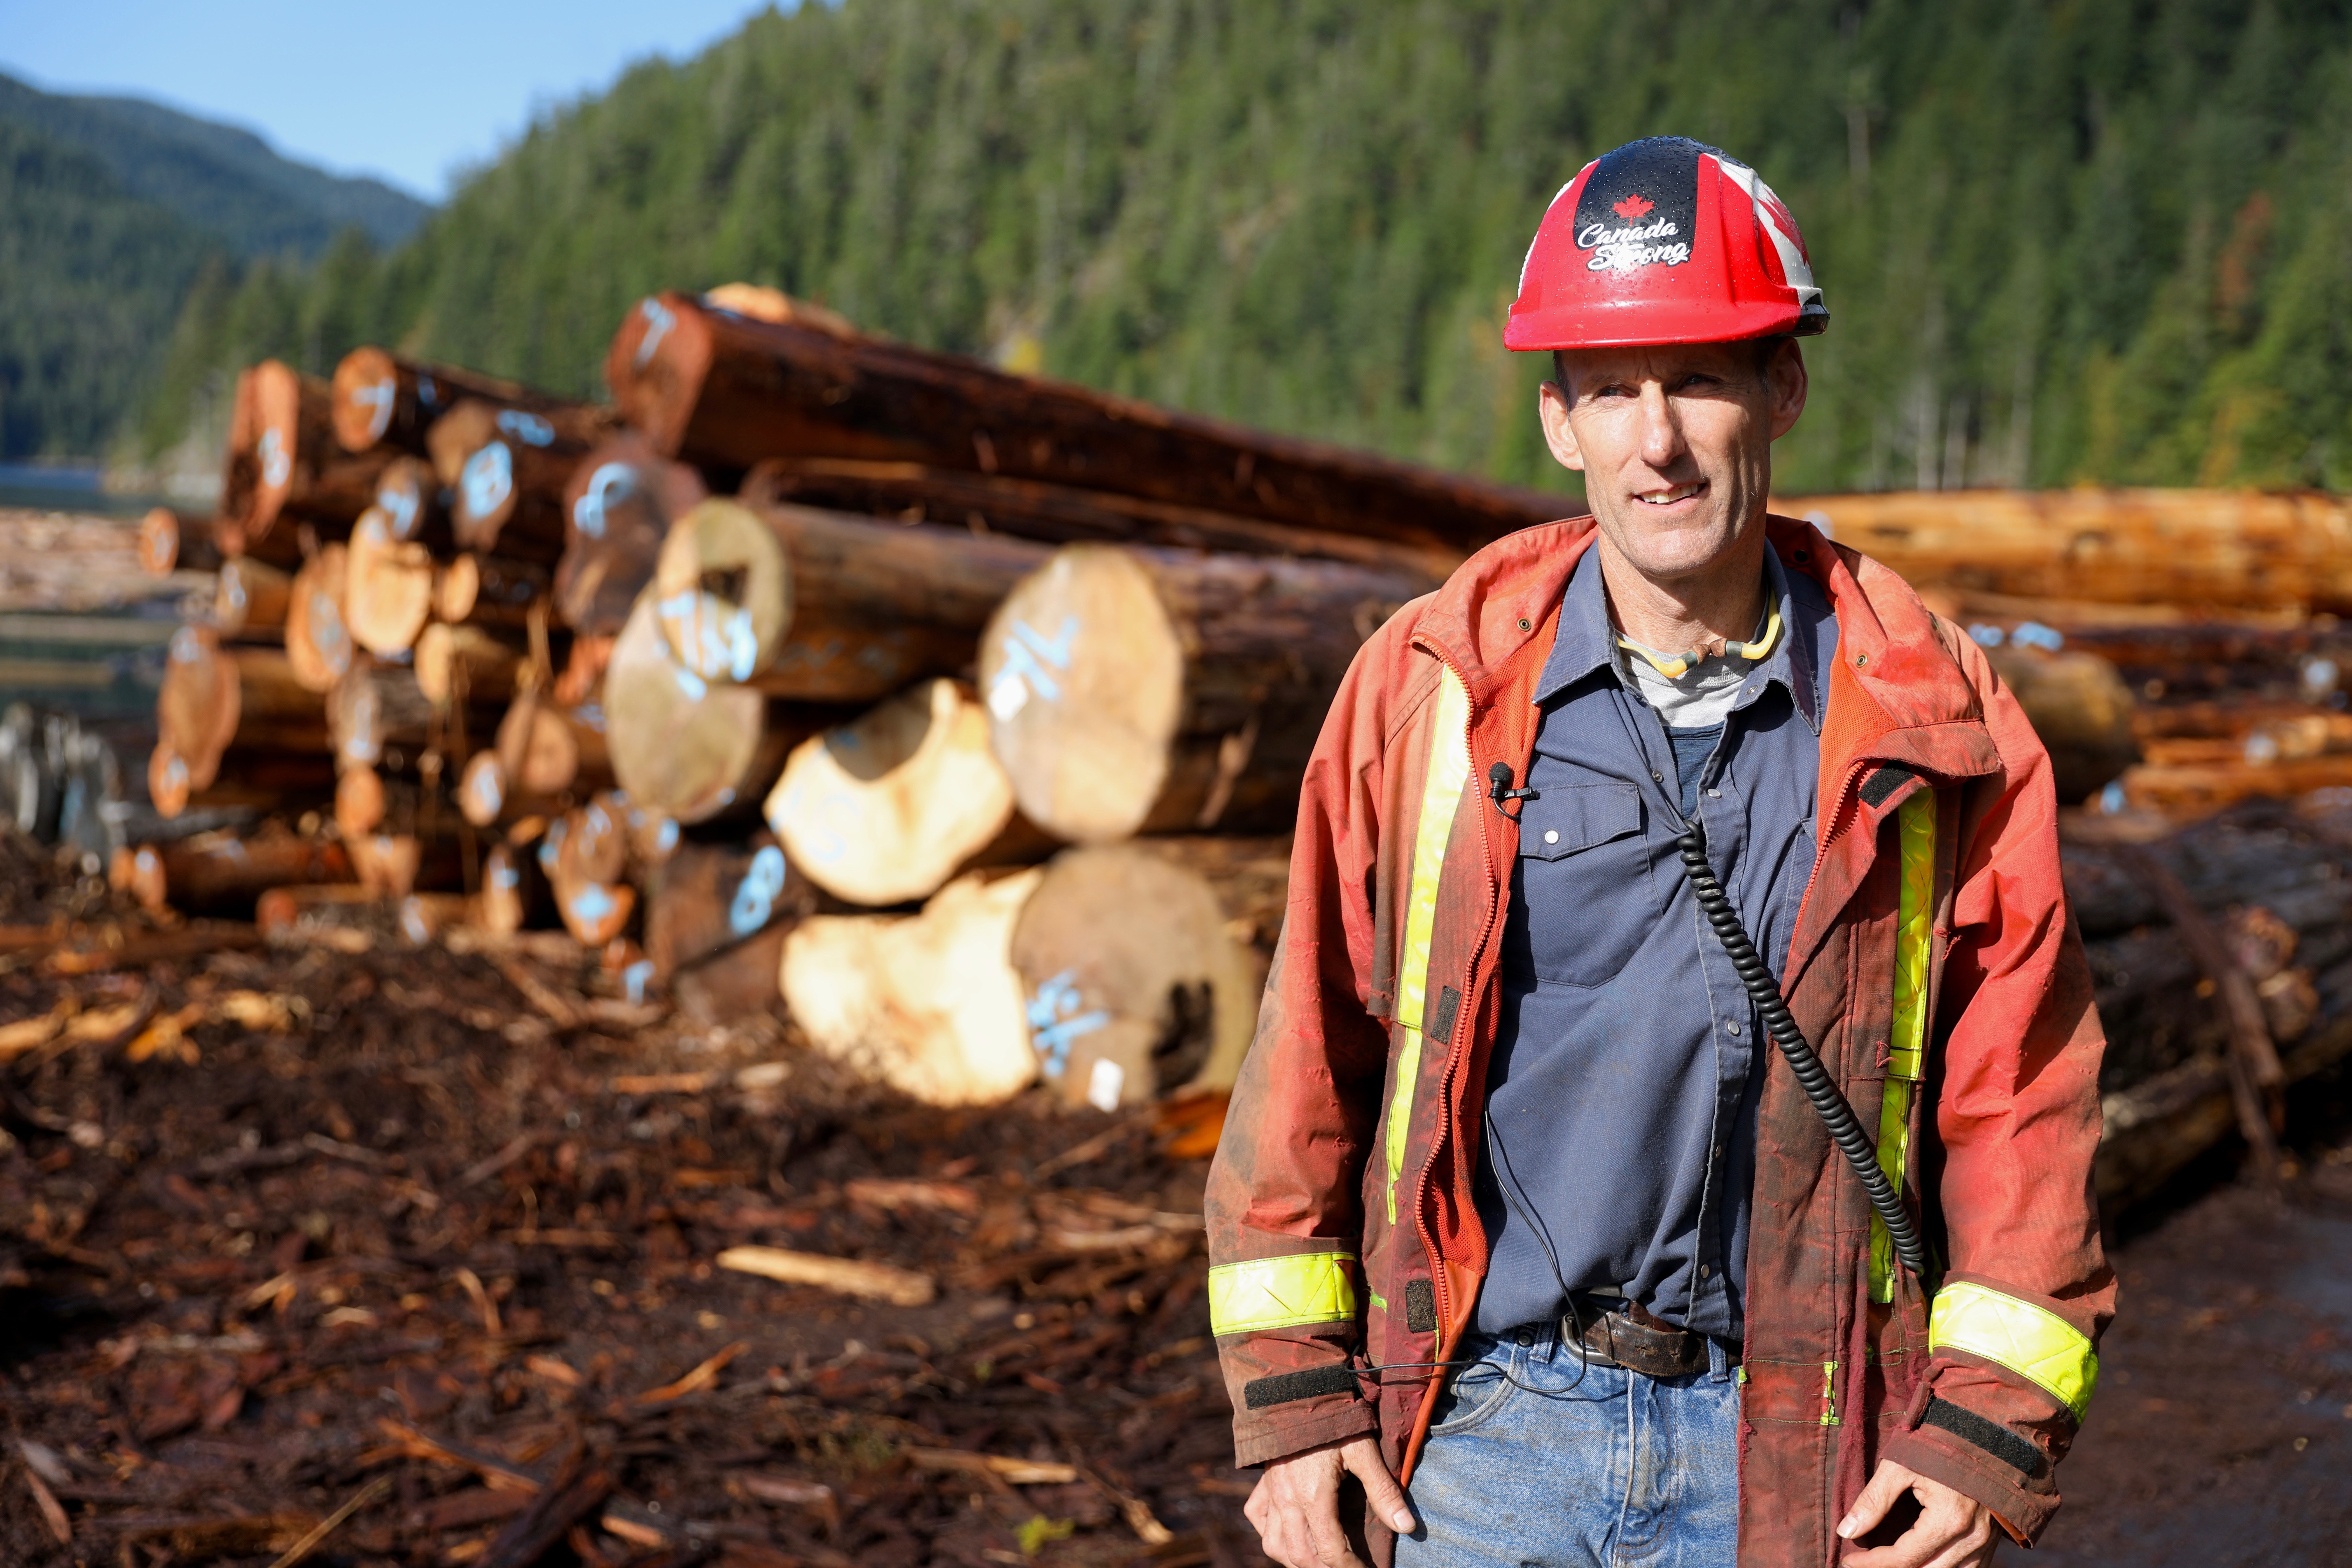 Mike McKay is retooling his mill to process more second growth logs so its future is not as dependent on old-growth wood. (Chris Corday/CBC)